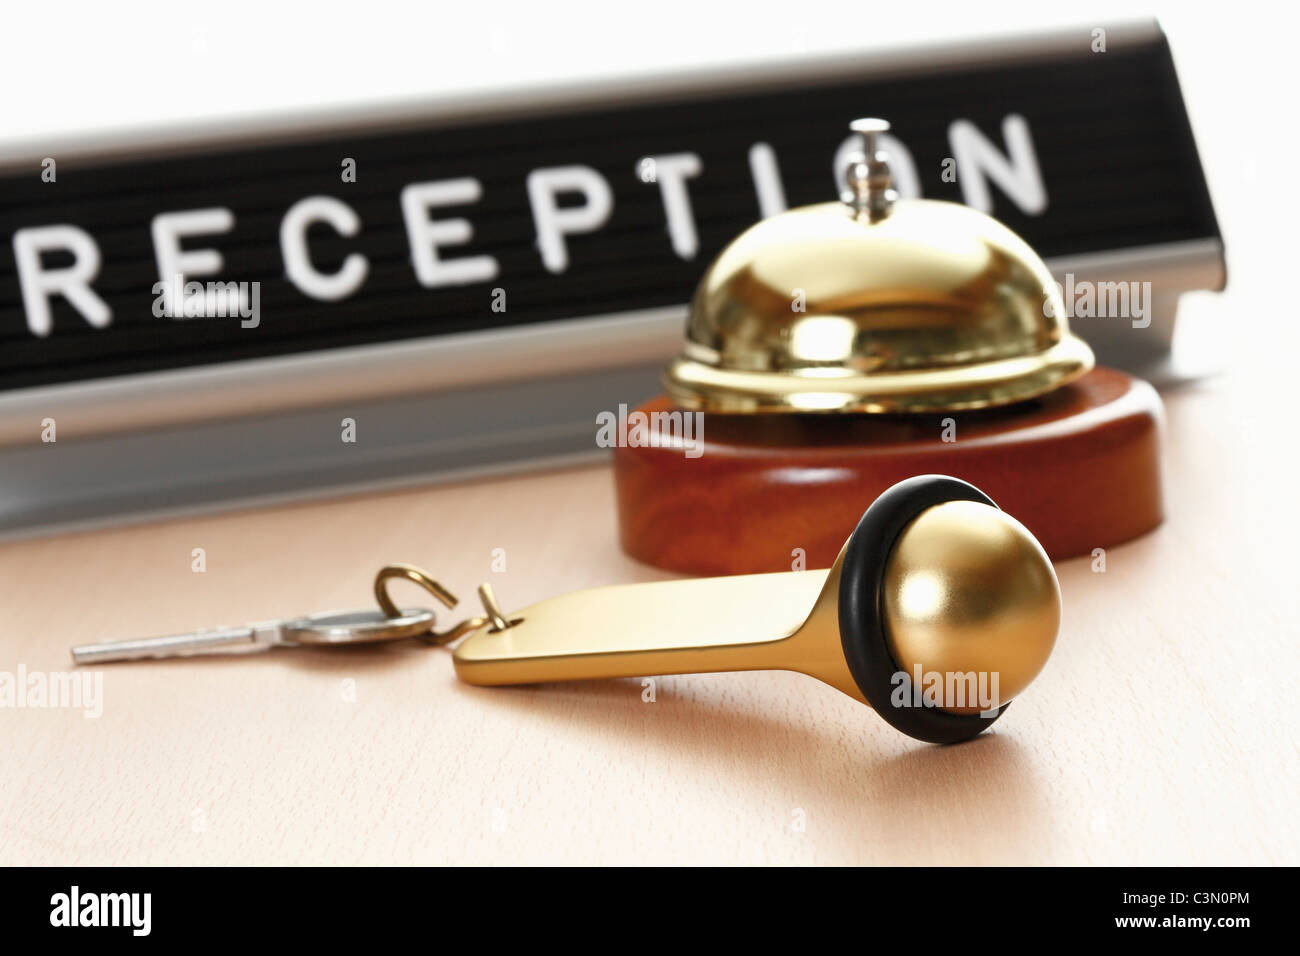 Reception sign with service bell and hotel key on desk - Stock Image